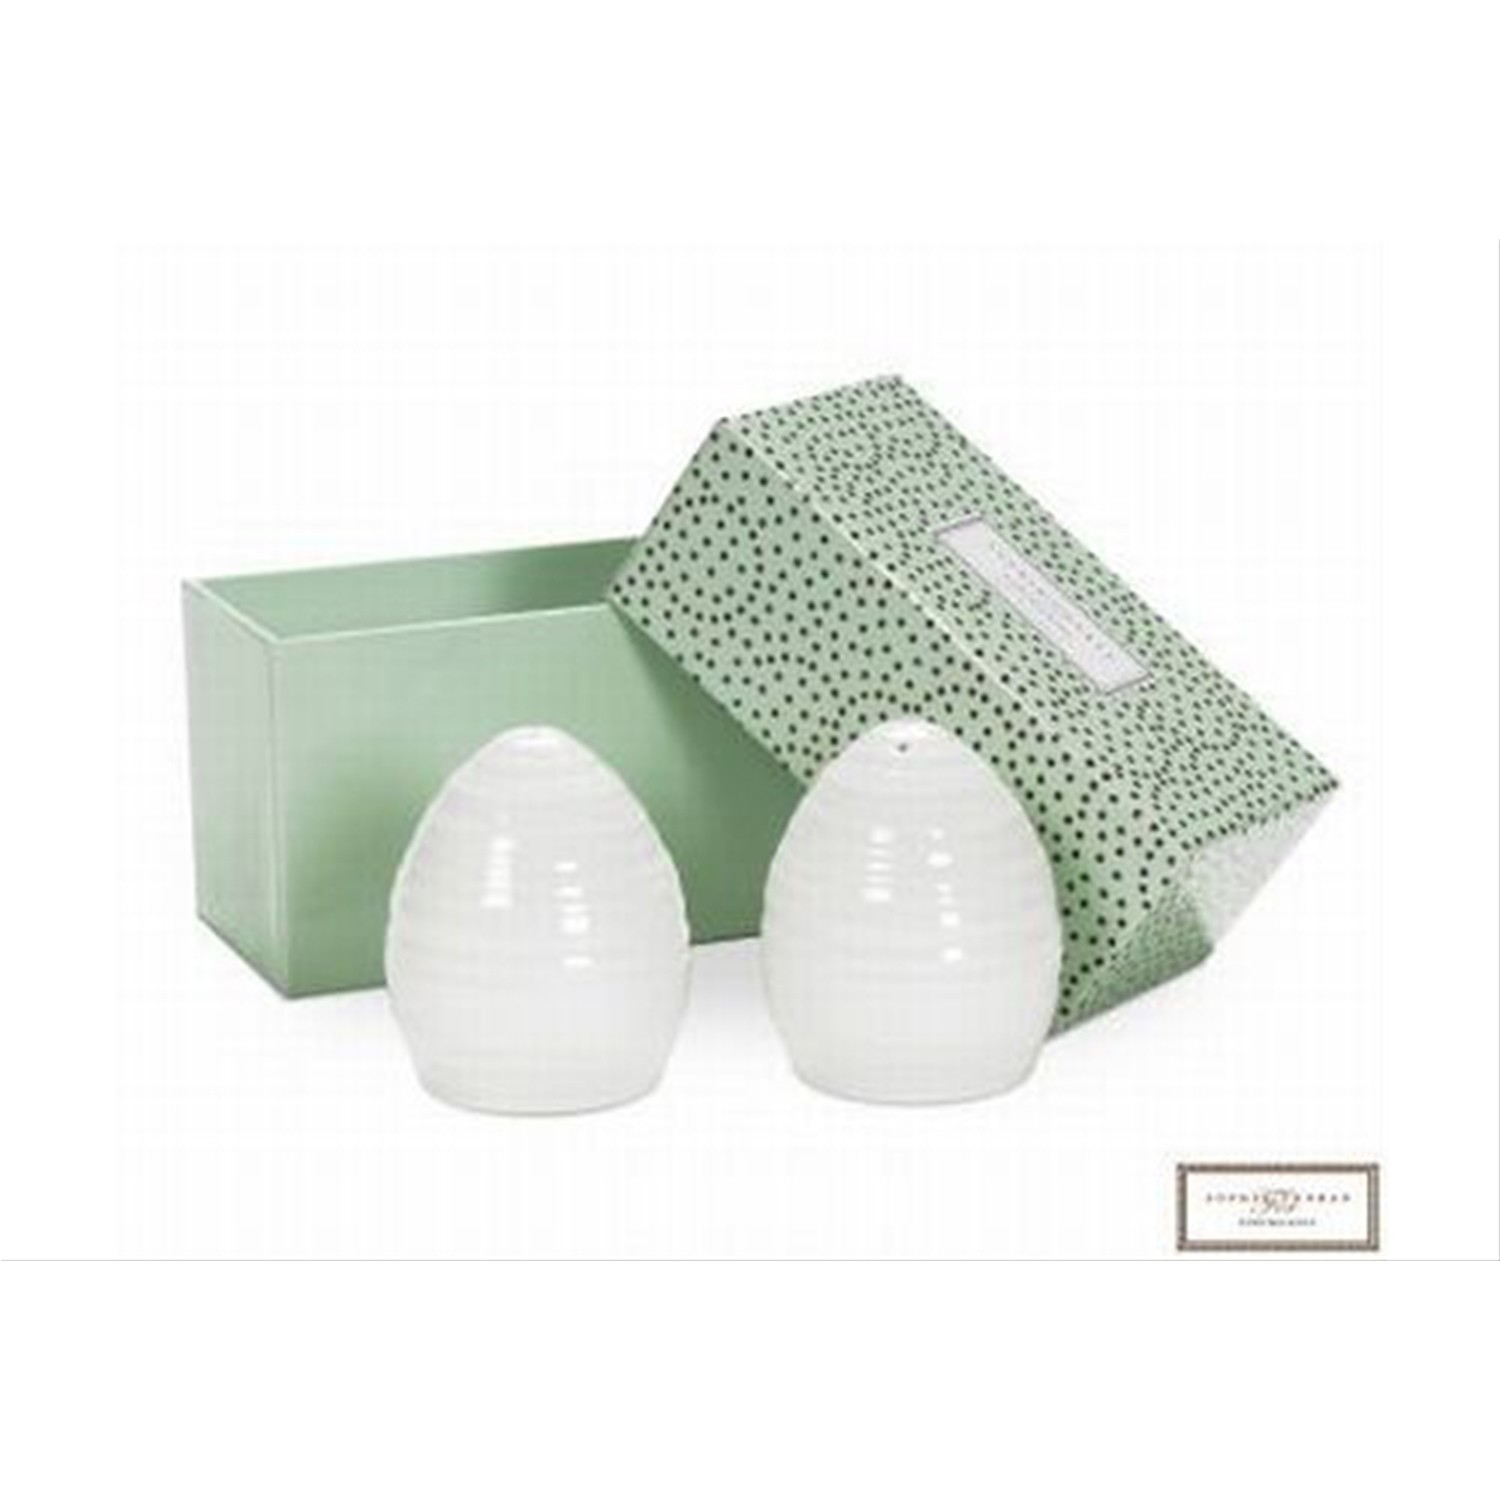 Sophie Conran Salt Amp Pepper Set Leekes